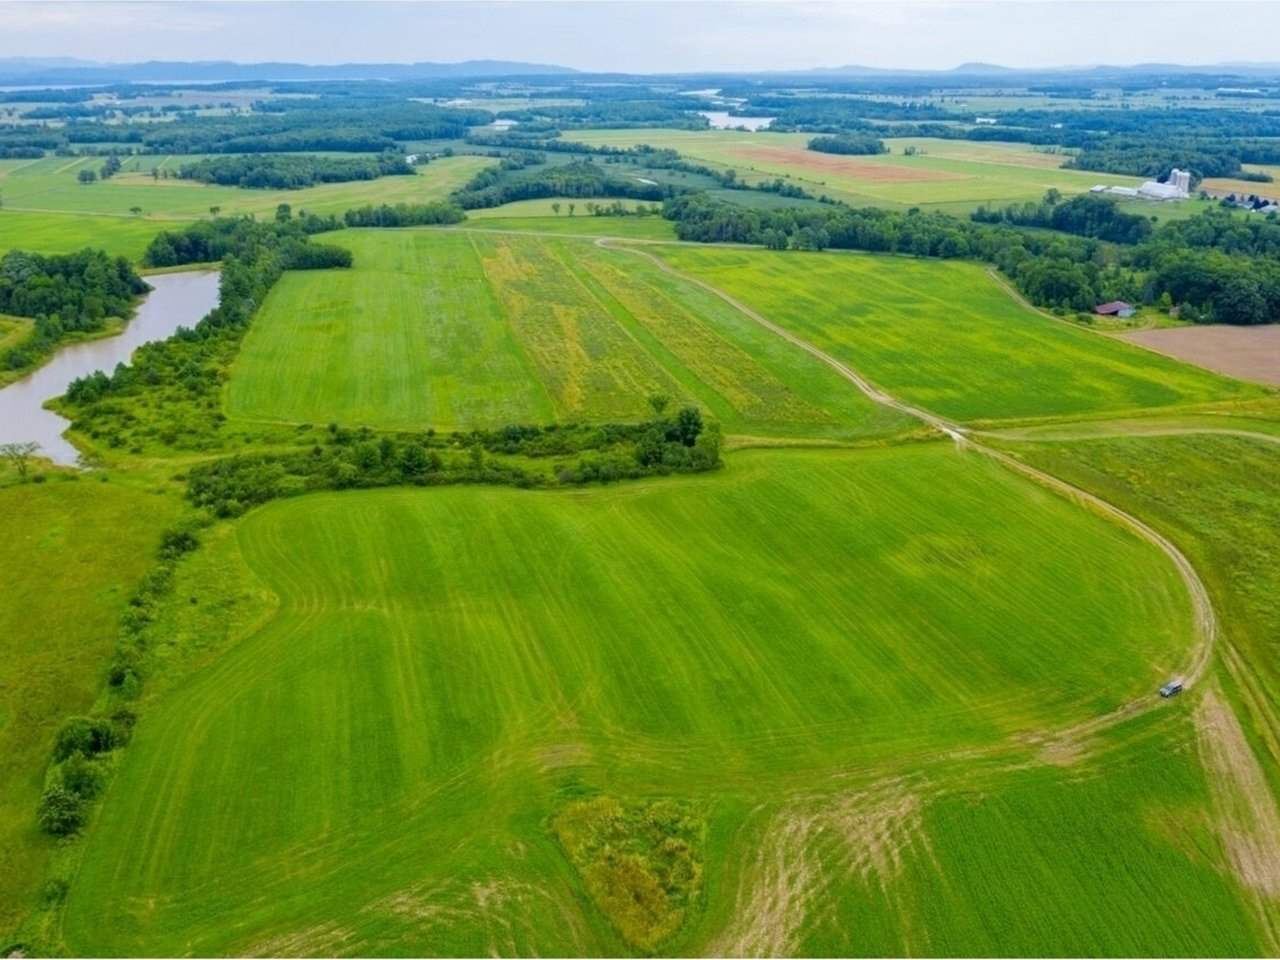 93 acres of prime Addison County farmland!! Currently being cropped for dairy production but would be suitable for a small agricultural farm operation of any kind that requires flat, tillable land made up of prime agricultural soils. The crop land has been conserved with the VT Land Trust but a 5 acres on Norton Town Road has been reserved for a future farmstead site for a new residence and required outbuildings. This is a great opportunity to create your own farm operation from scratch with new state of the art production facilities as well as a new home. Located on a quiet road for privacy, this property would suit any one of a number of alternative farming ventures including a goat dairy, vegetable farm, fruit and nut tree production as well as hemp, hops, and other fiber and grain crops. Become part of the quickly diversifying Vermont agricultural scene in area that supports plants with a zone 5 hardiness requirement.